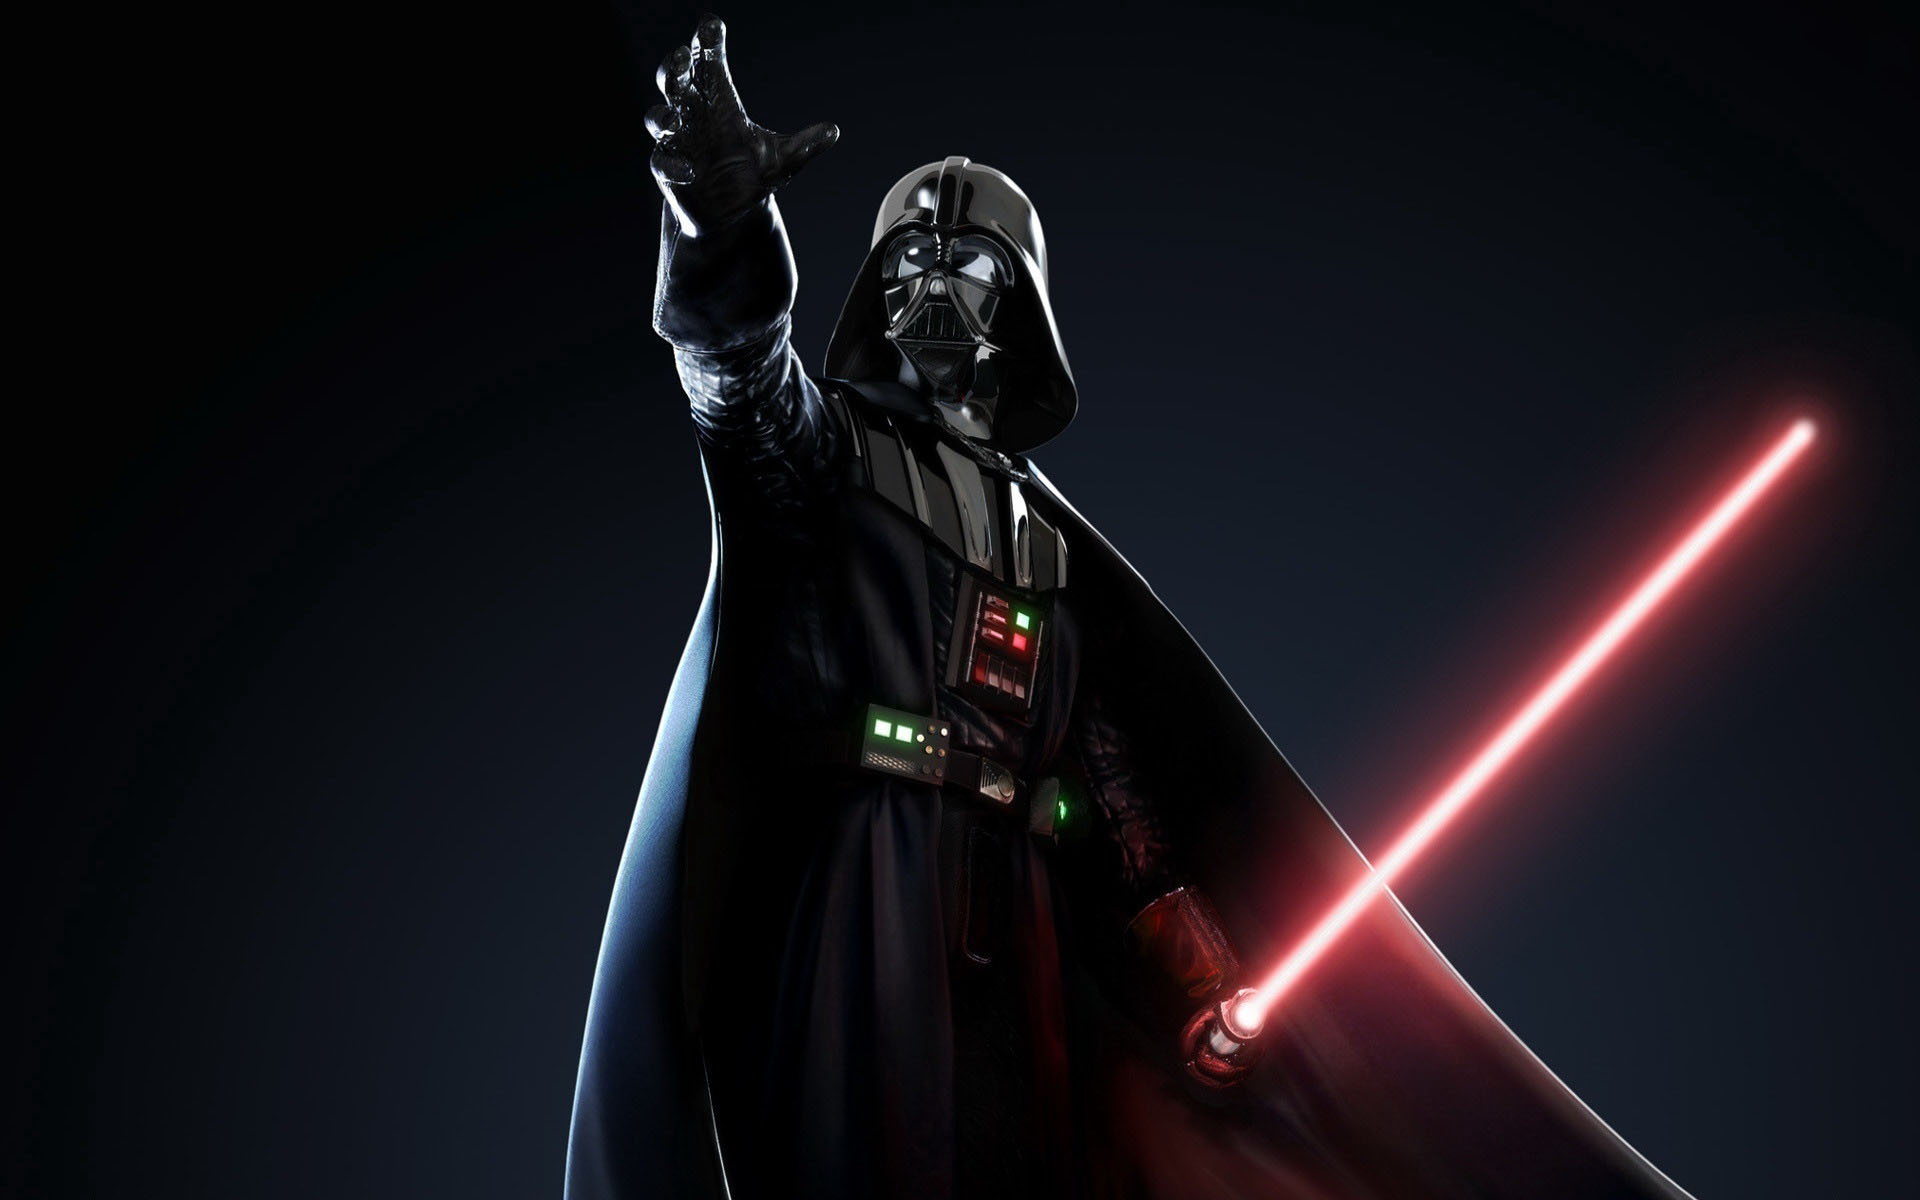 Darth Vader Hd Movies 4k Wallpapers Images Backgrounds Photos